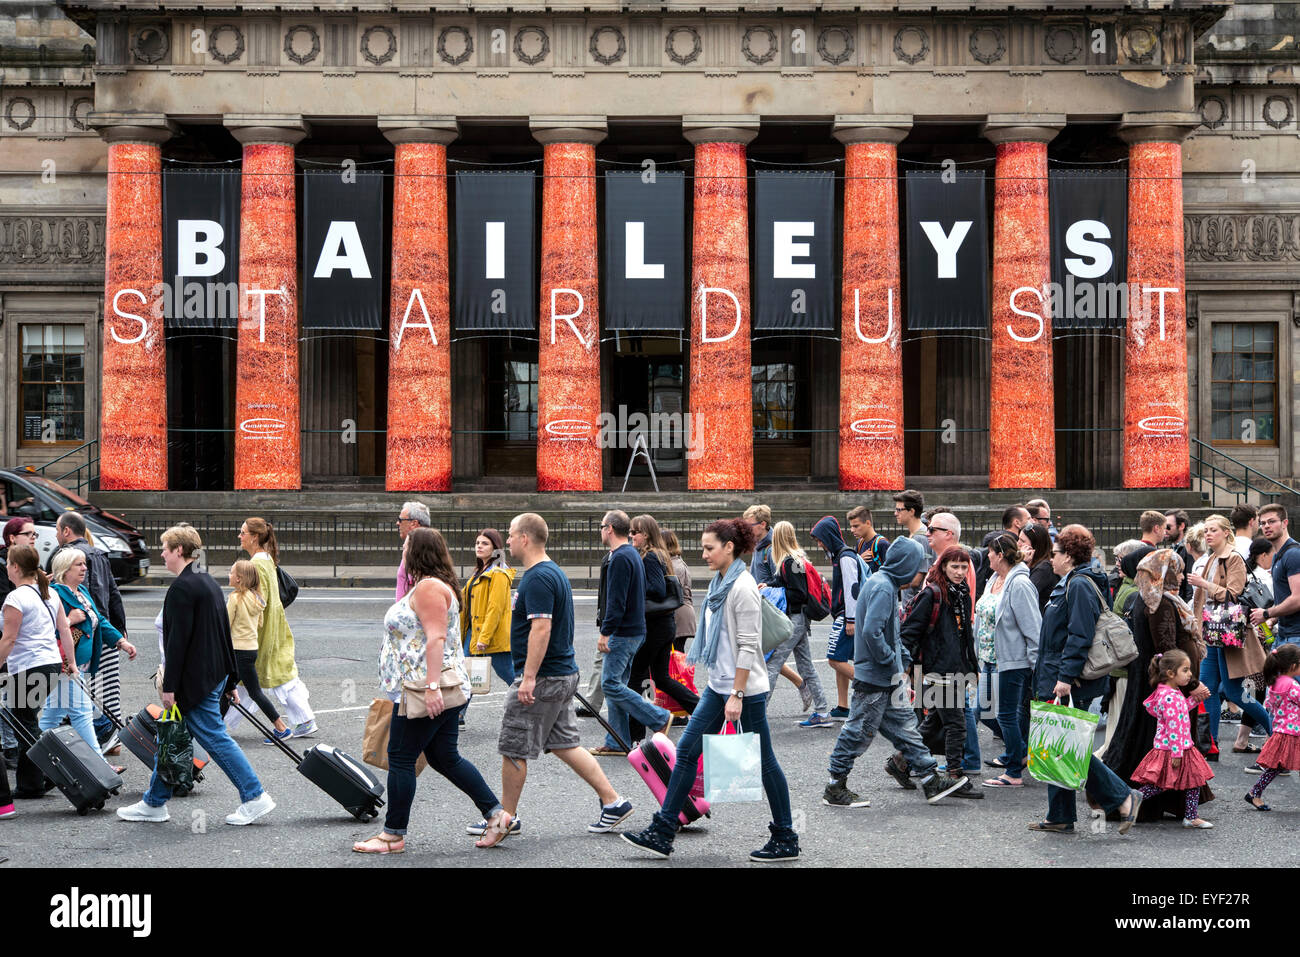 Pedestrians cross Princes Street in front of the Royal Scottish Academy which is hosting a David Bailey exhibition. - Stock Image